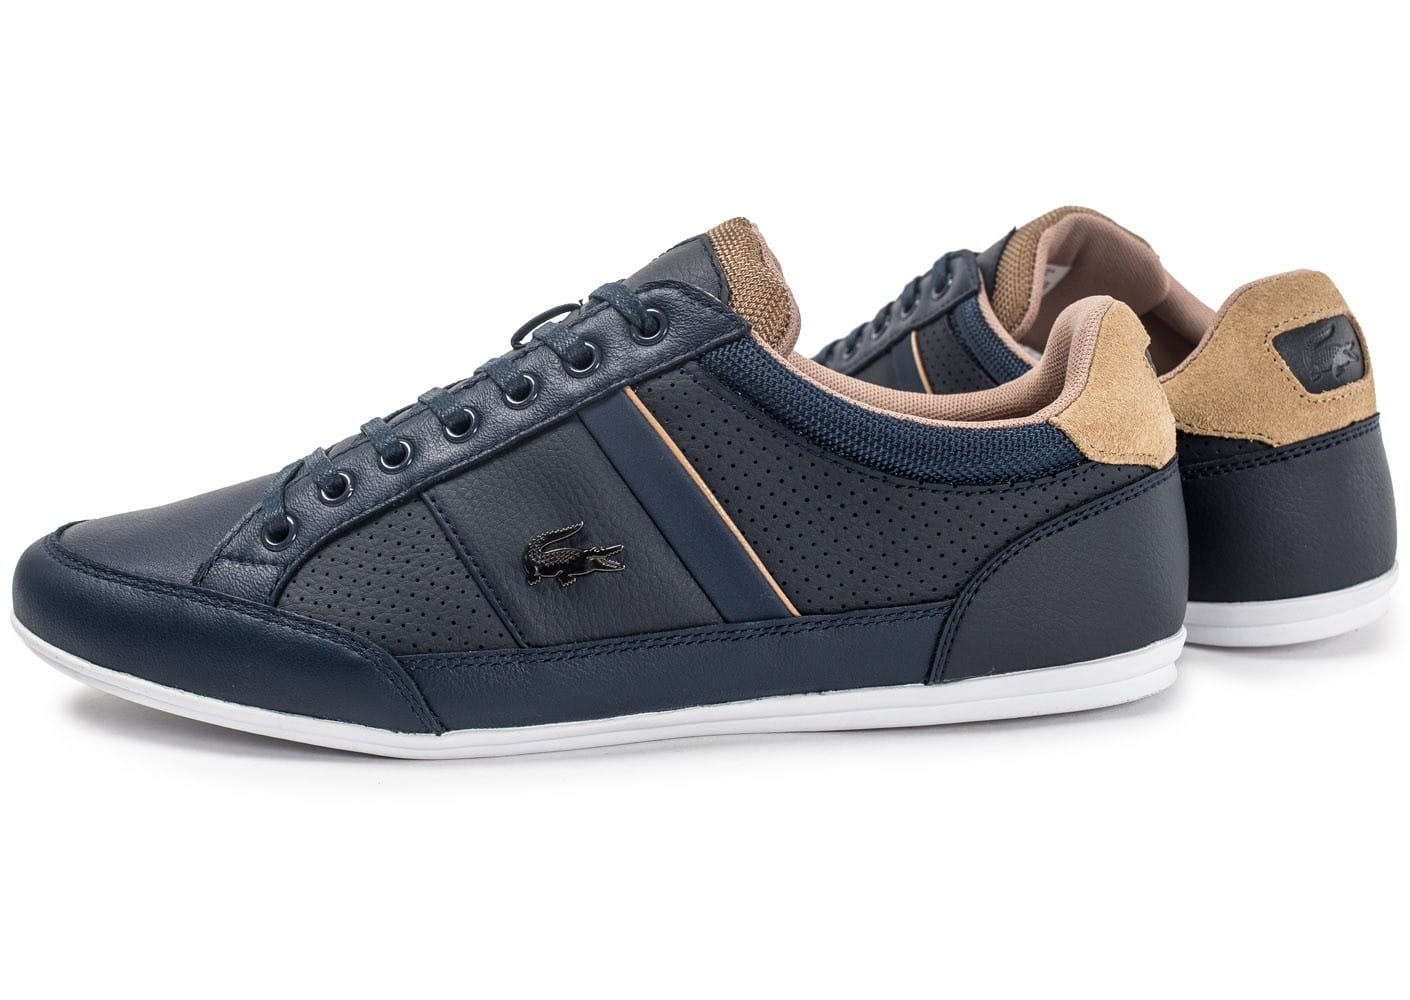 Chaussures Lacoste bleu marine Casual homme mZVcVDNkK